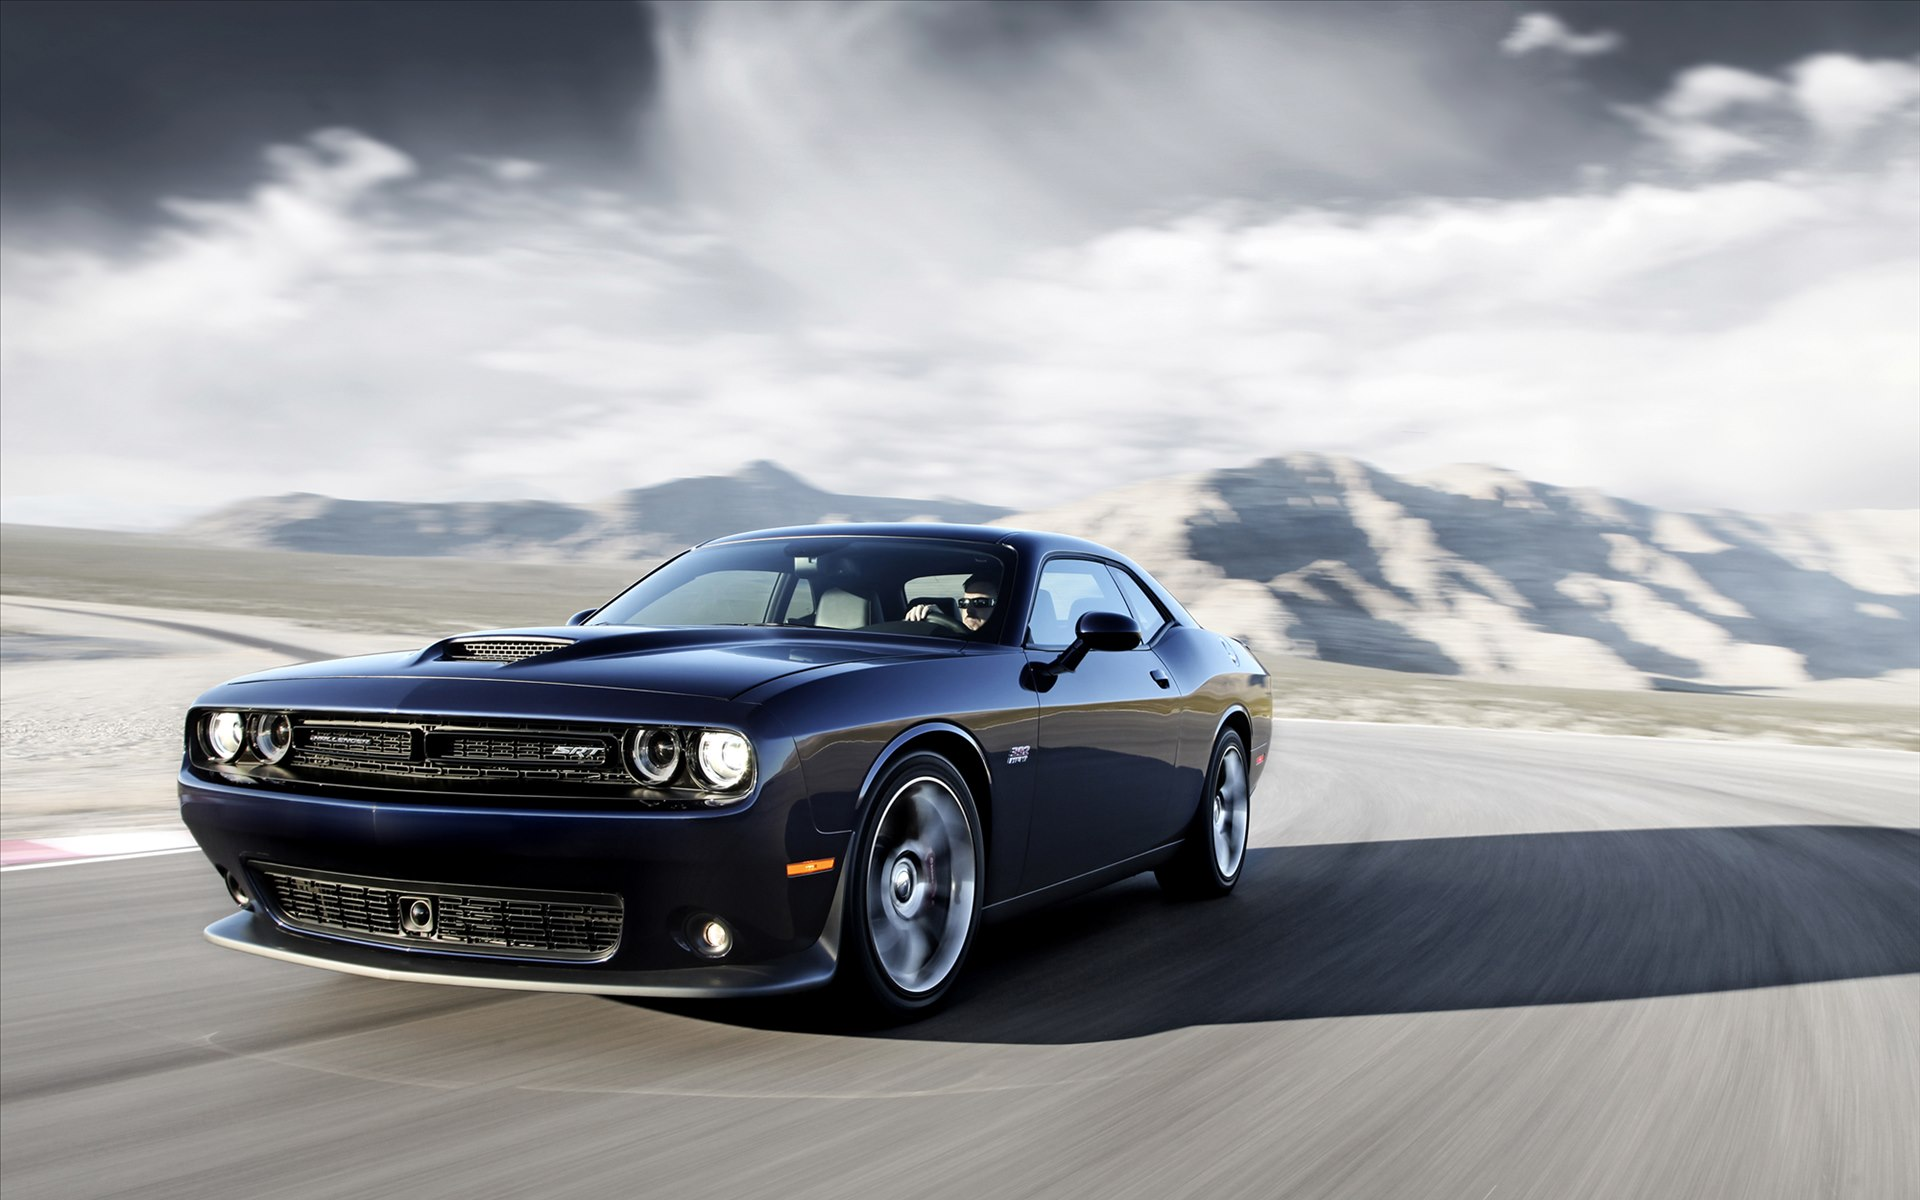 dodge challenger wallpaper widescreen - wallpapersafari